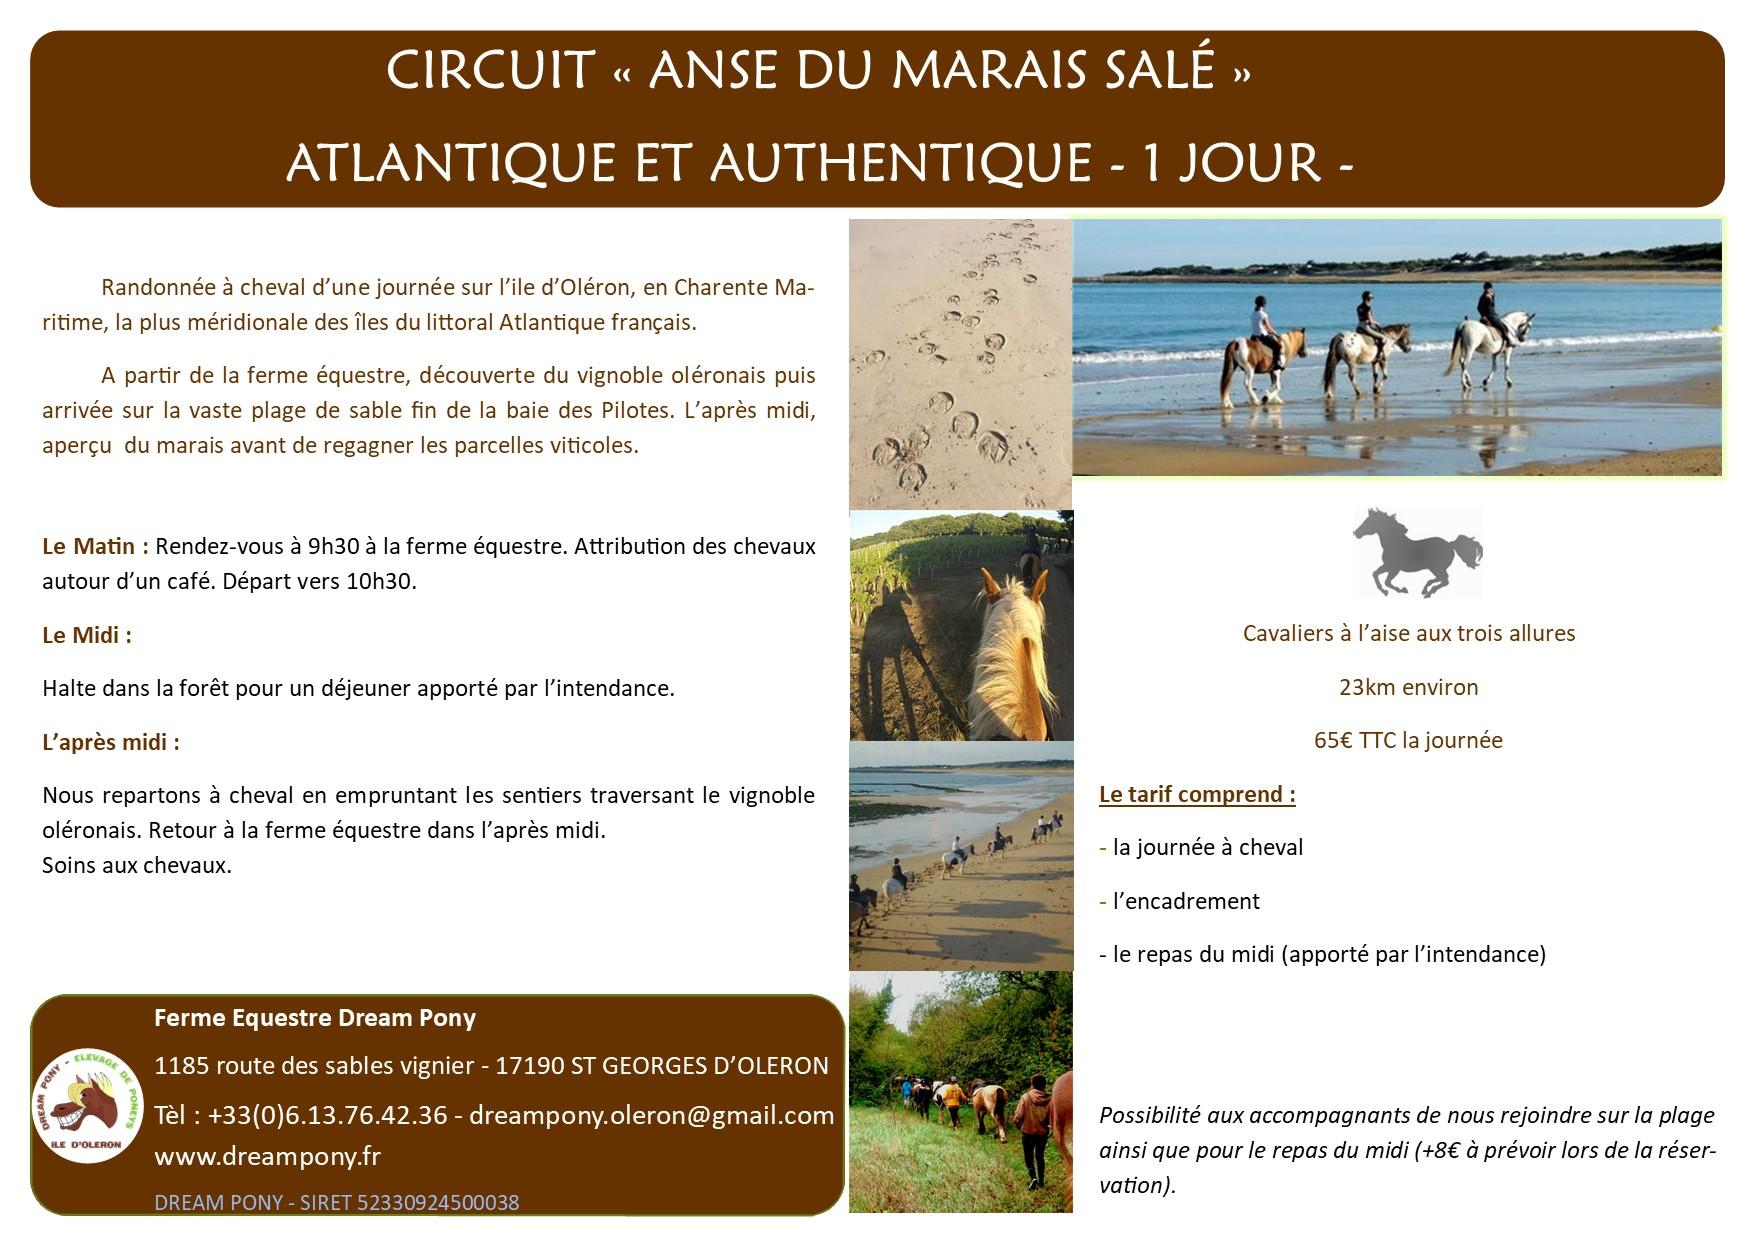 description circuit à cheval anse du marai salé, ile d'oléron, dream pony